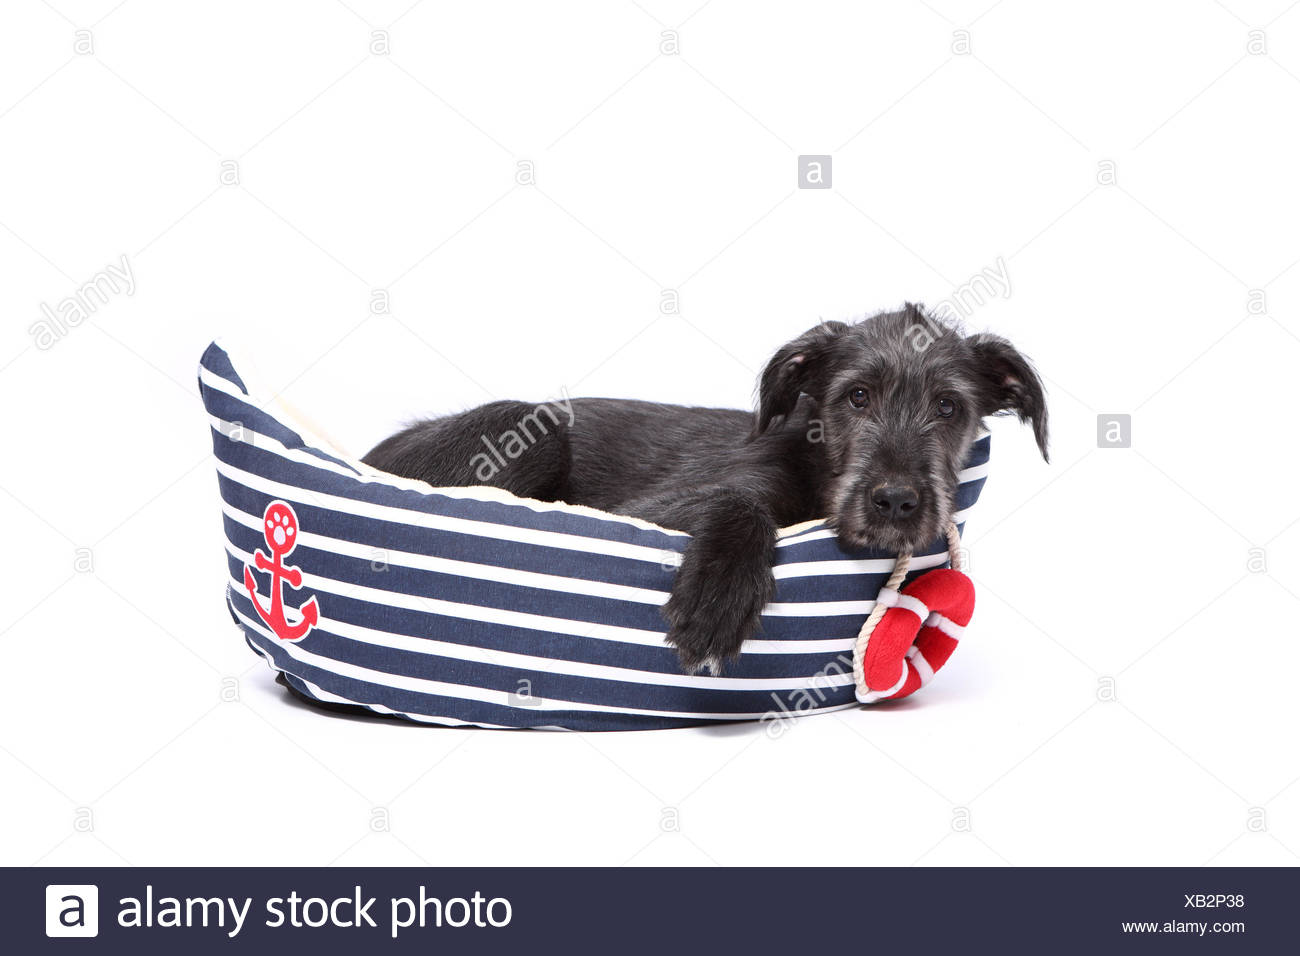 Irish Wolfhound. Puppy (9 weeks old) lying in a pet bed shaped like a boat. Studio picture against a white background. Germany Stock Photo